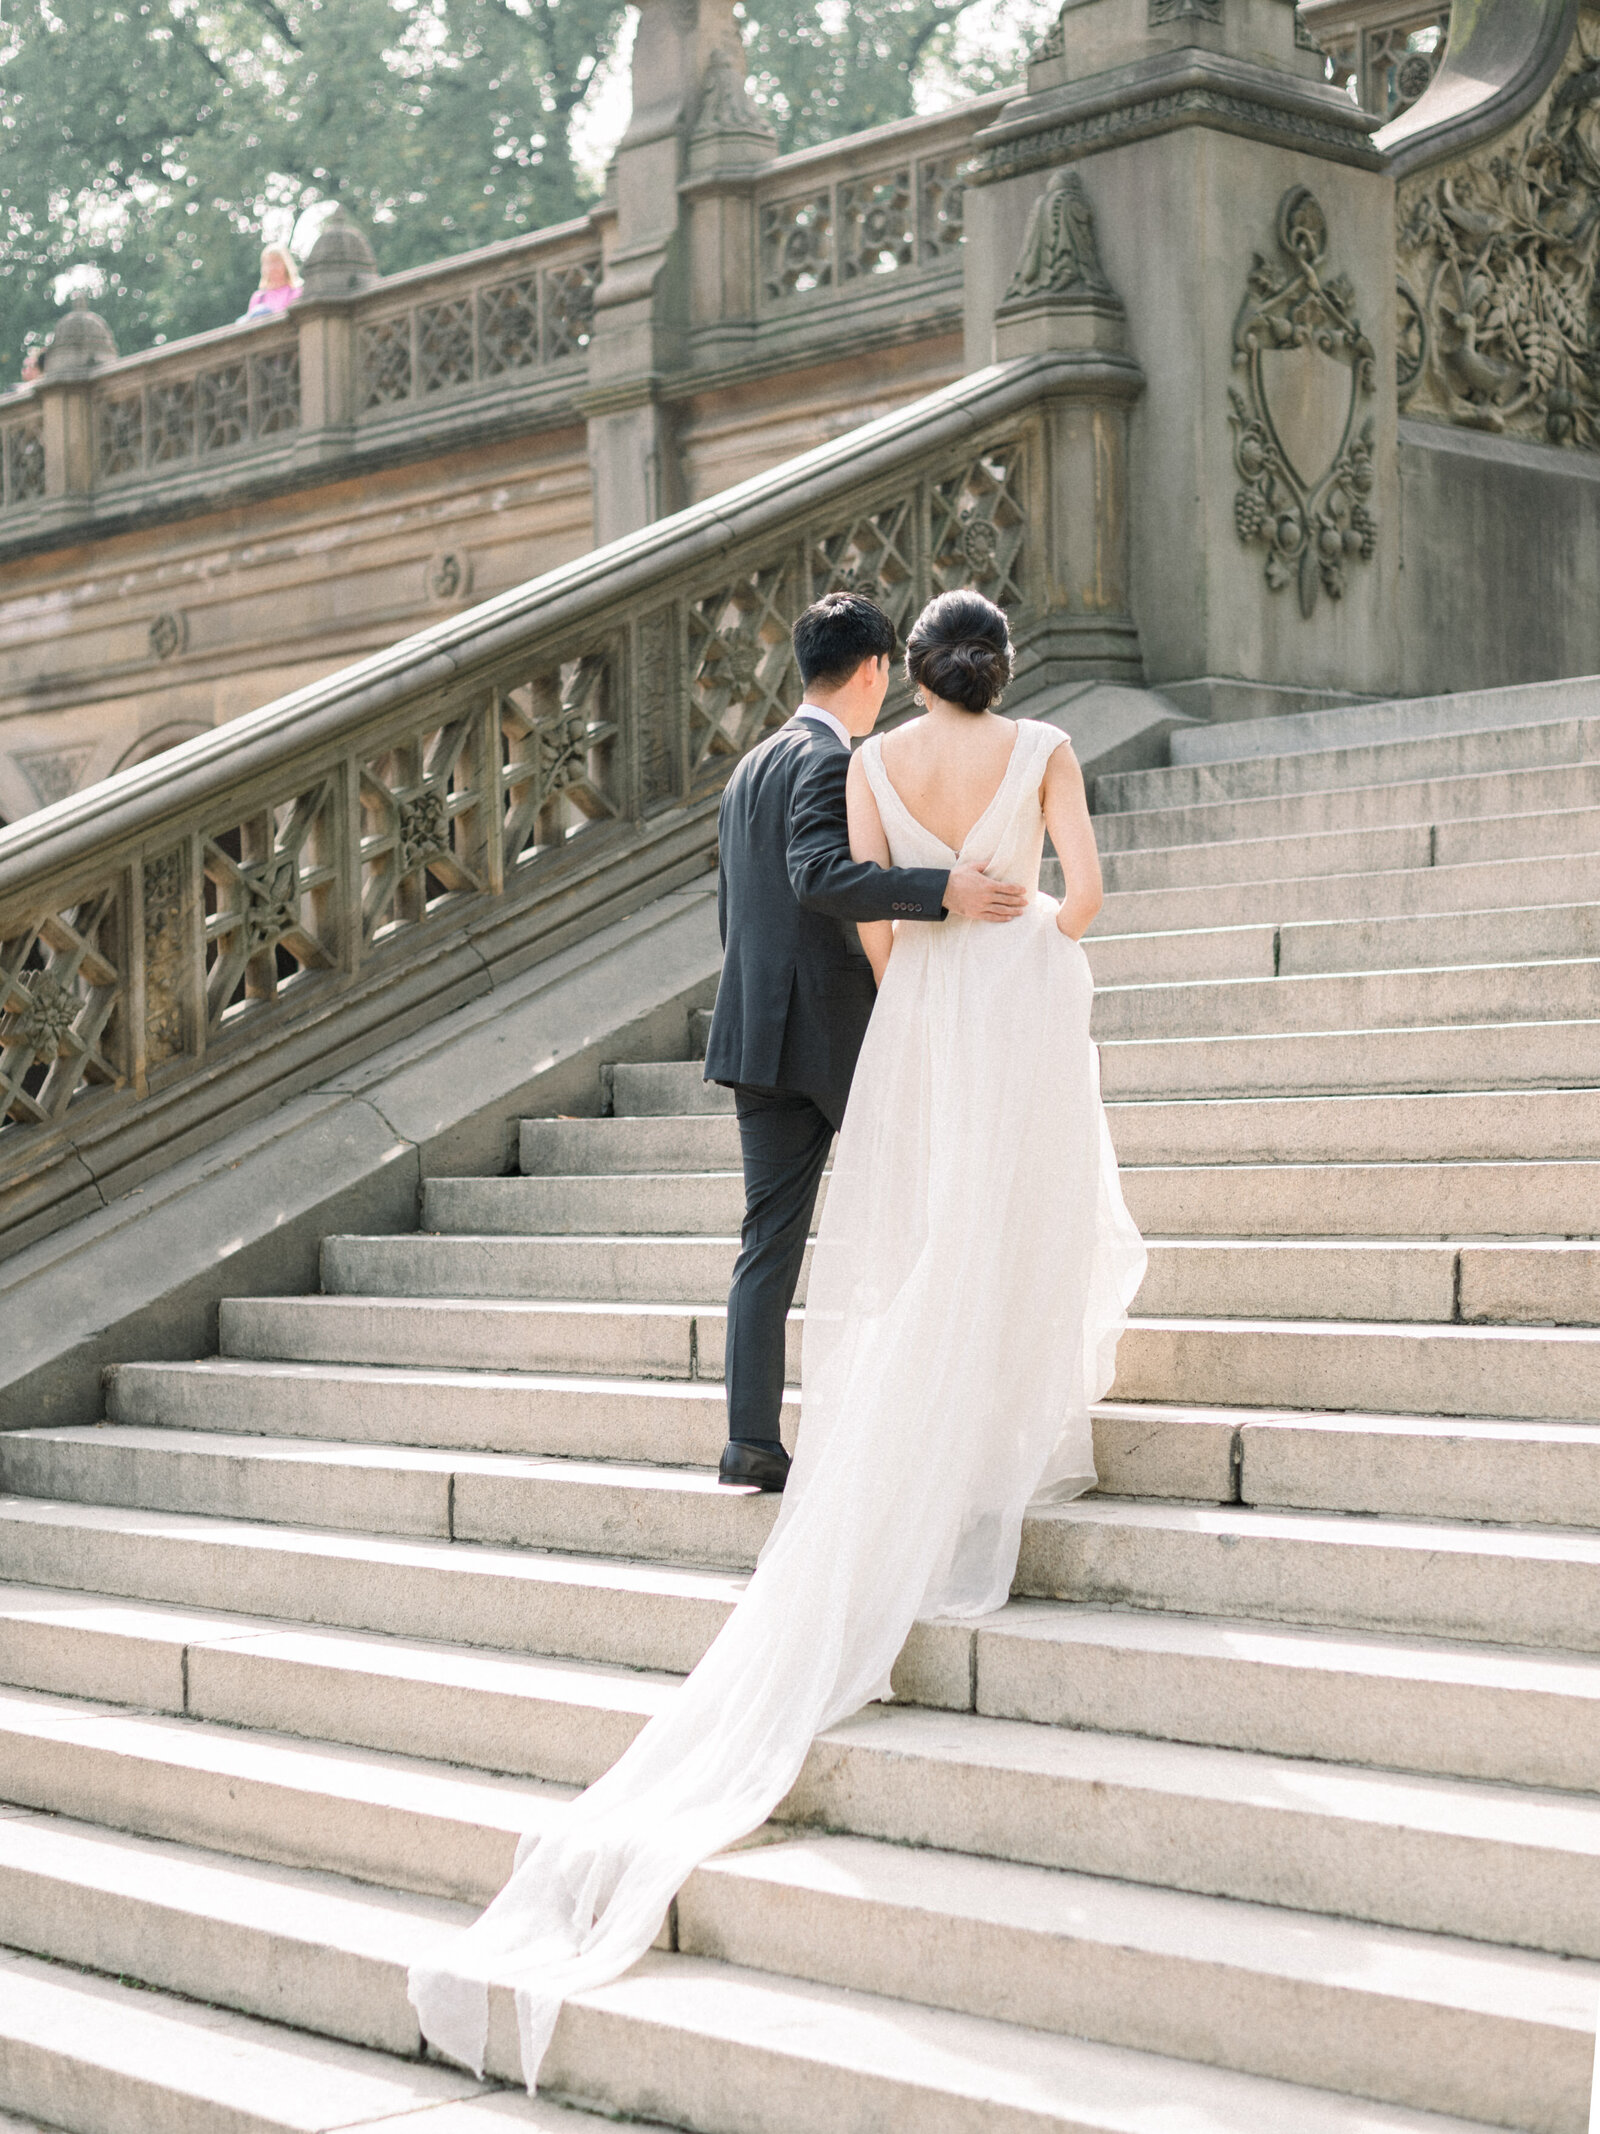 Bride wears Carol Hannah and shares a moment with groom on stairs at Bethesda Terrace in Central Park NYC